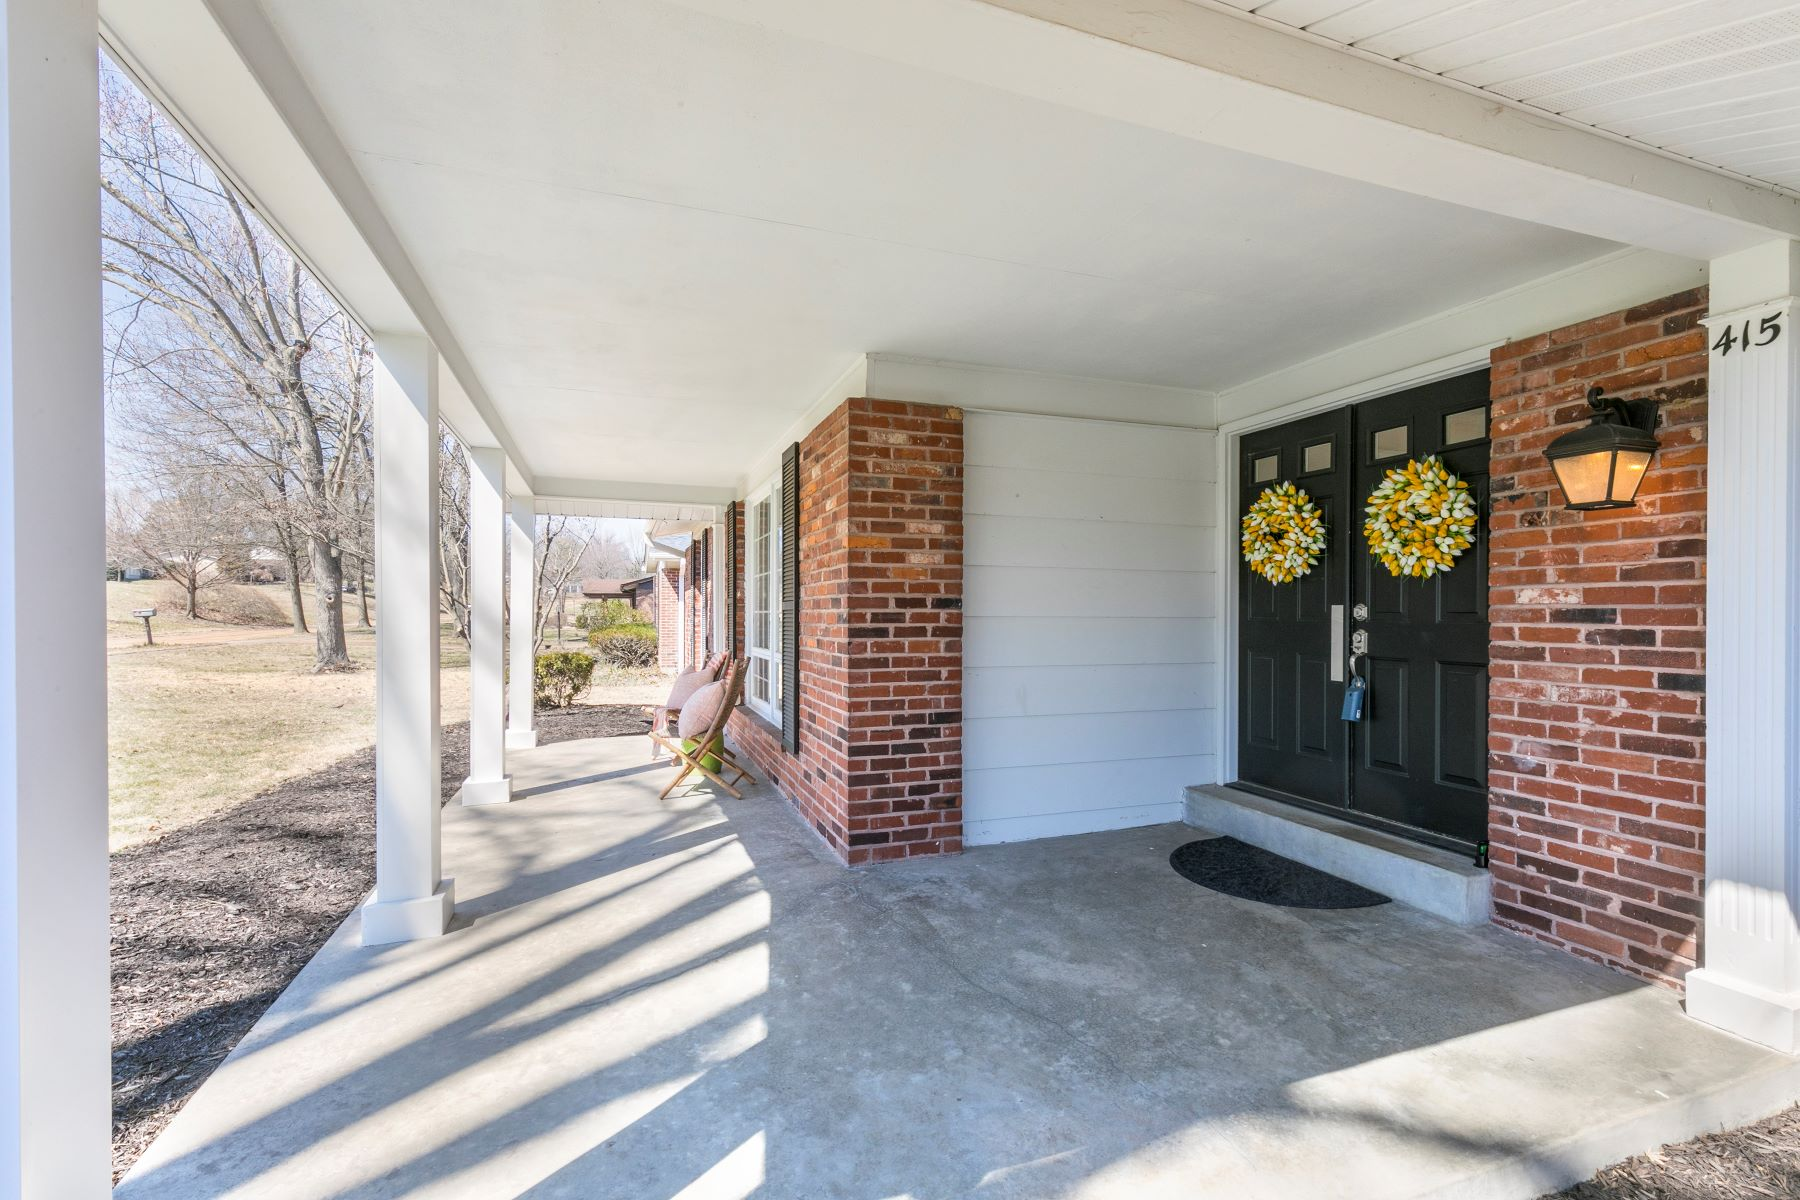 Additional photo for property listing at Monticello Drive 415 Monticello Drive Ballwin, Missouri 63011 United States